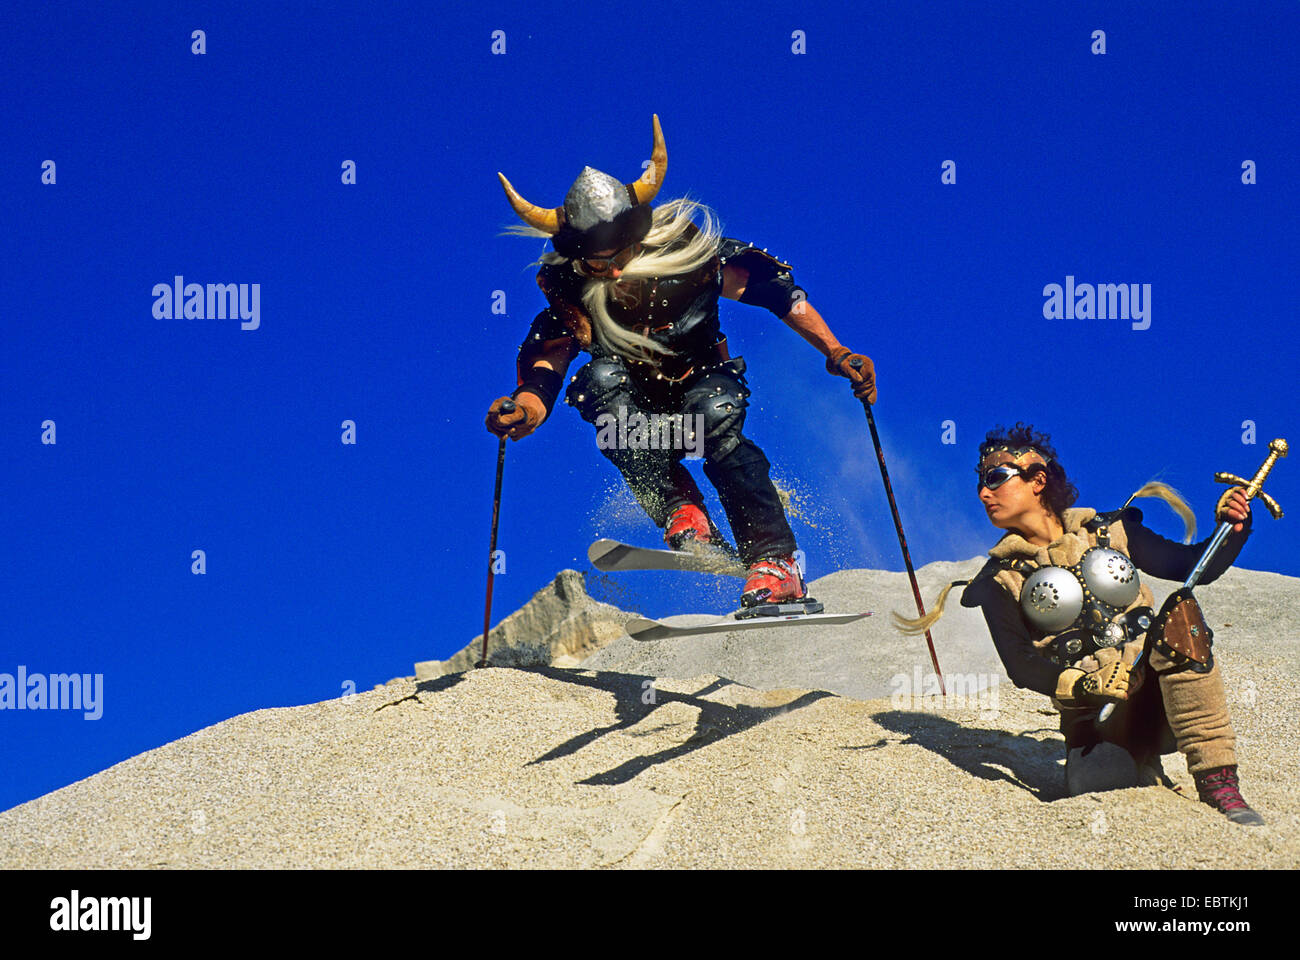 freeride skier disguised as viking going downhill on gravel slope - Stock Image